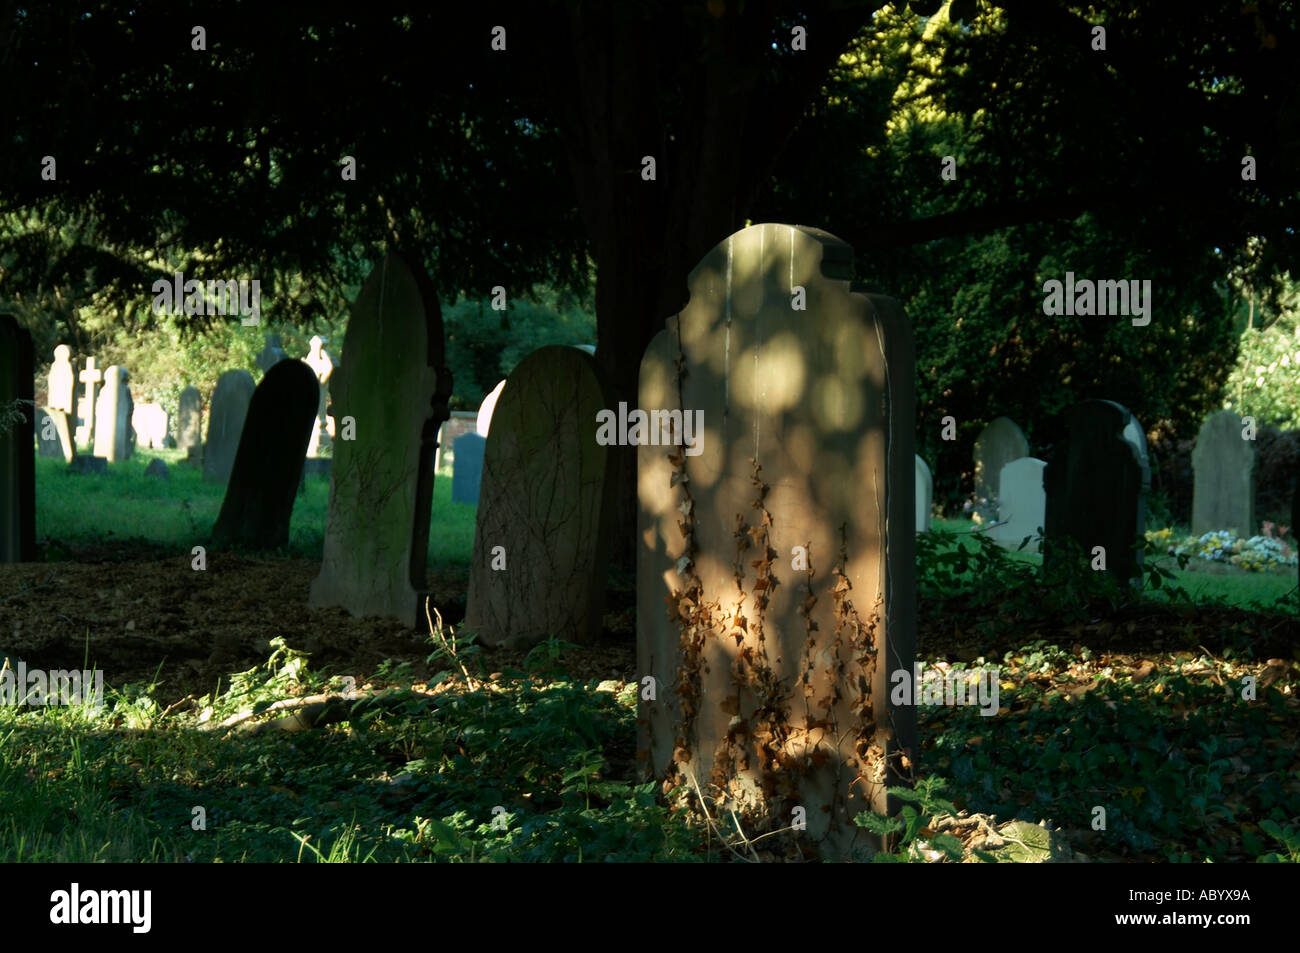 Gravestone with dappled light on it in cemetery dead die funeral old age stone grave headstone head buried bury - Stock Image